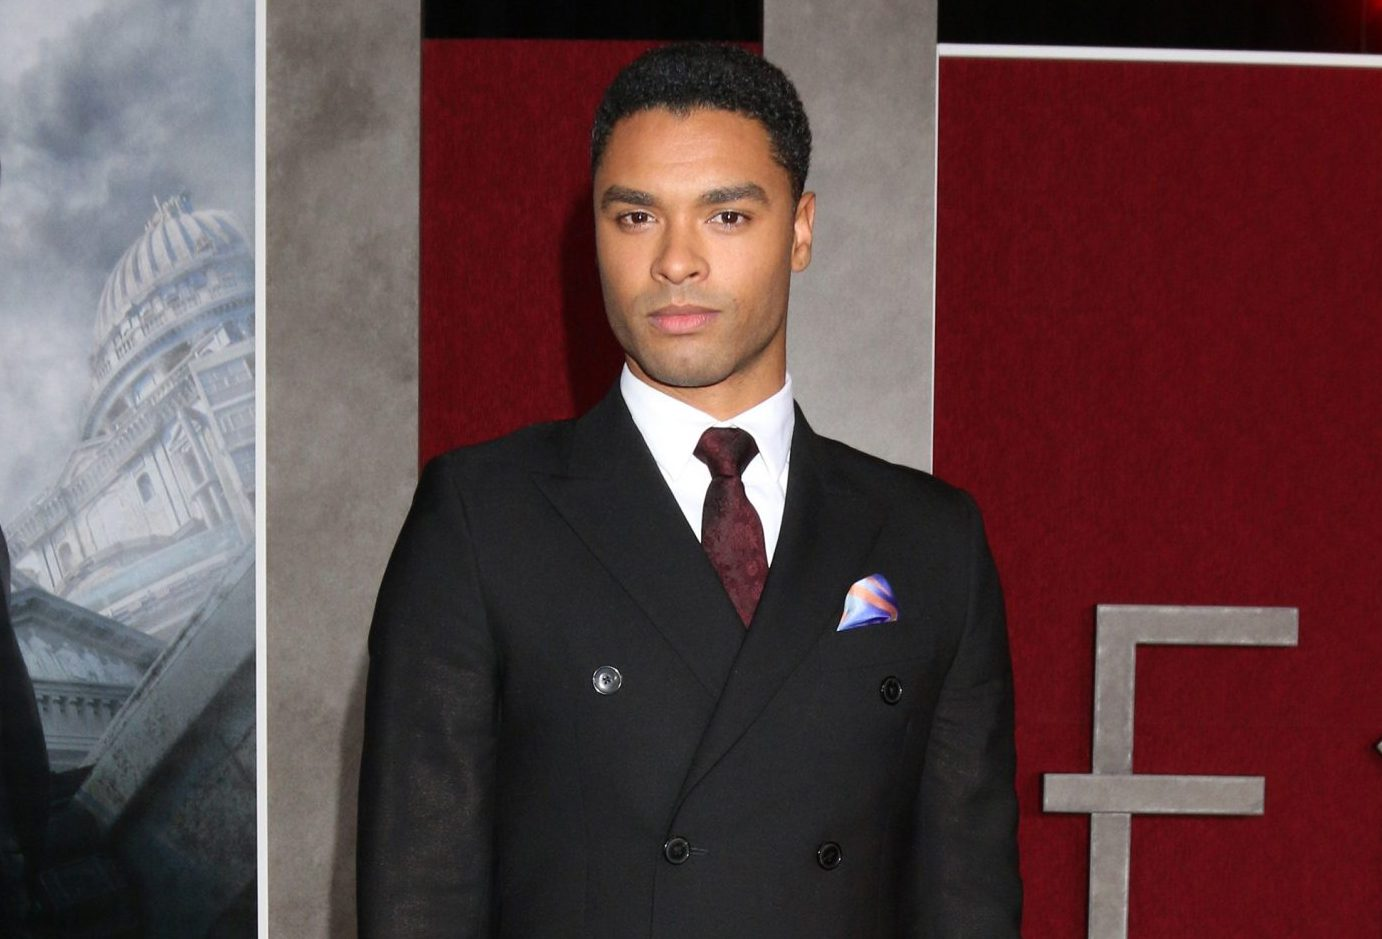 Regé-Jean Page attends a red carpet event. He is wearing a dark suit and deep red tie with a white shirt.